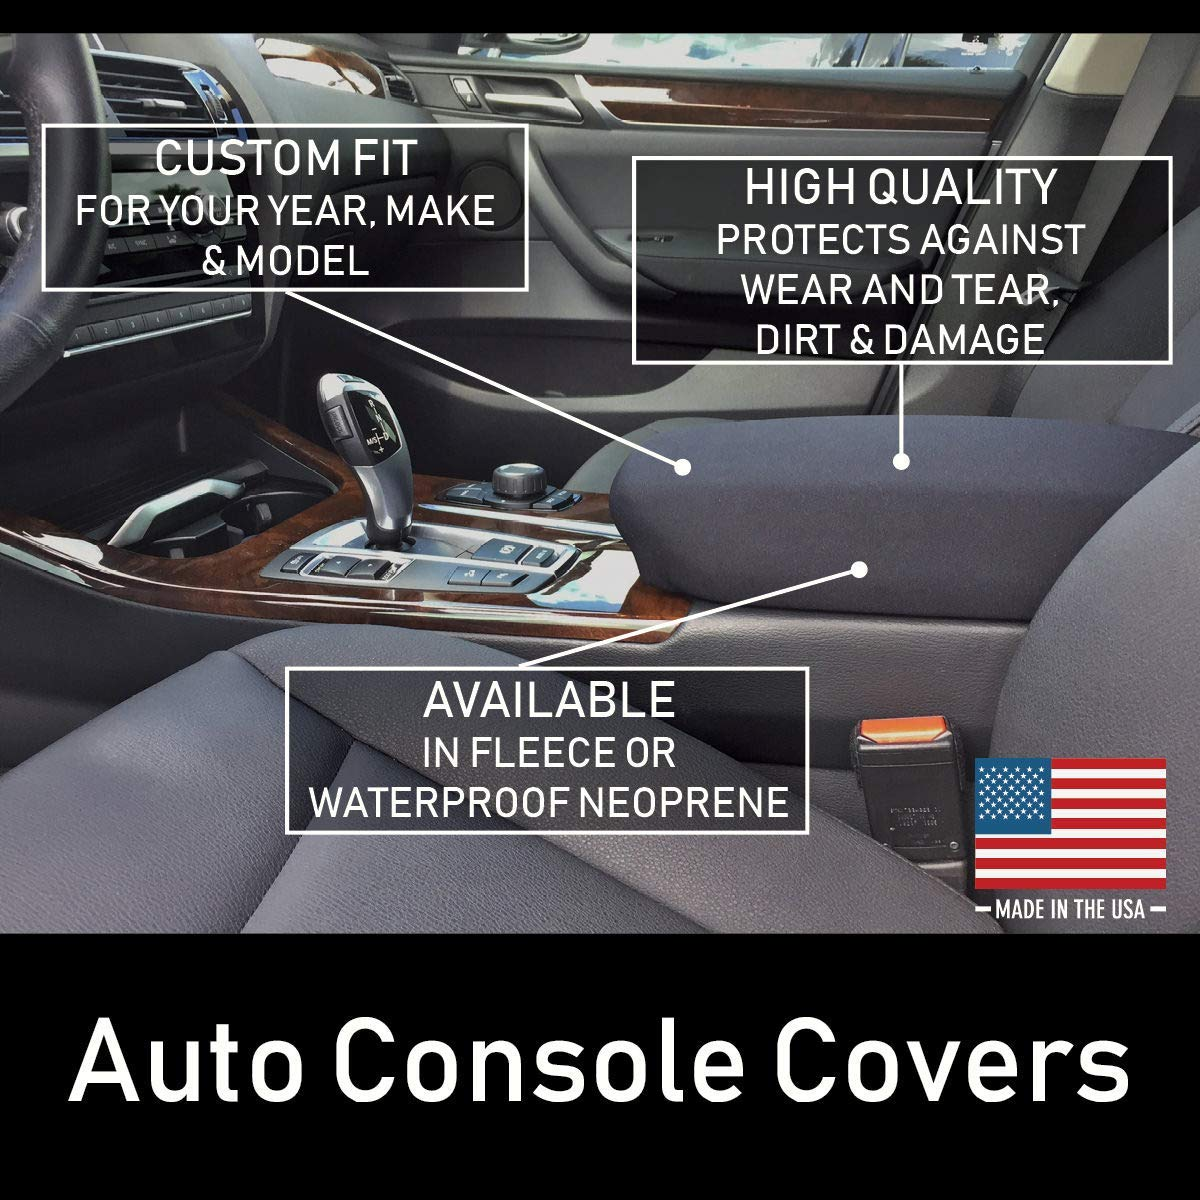 Buy Neoprene Center Console Armrest Cover Fits the Chevrolet Silverado High Country (Double Cab) 2020-2021